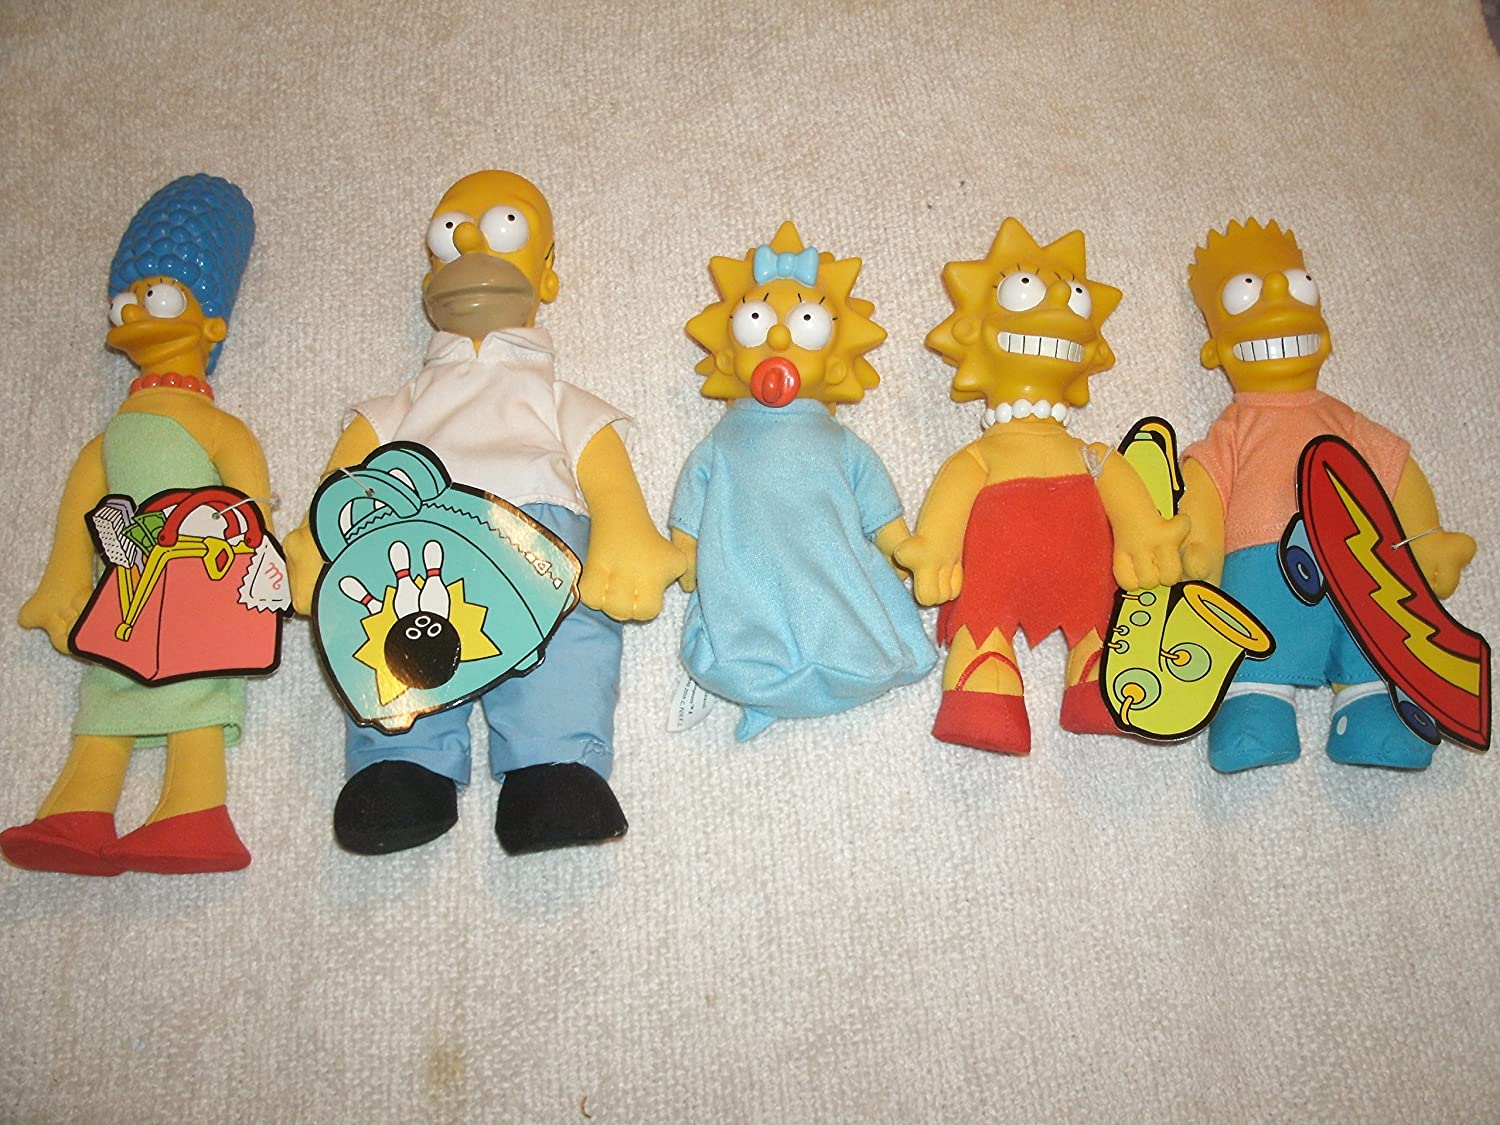 Amazon Com Collection Of Five Burger King Simpson Doll Figures Homer Marge Bart Lisa And Maggie Toys Games